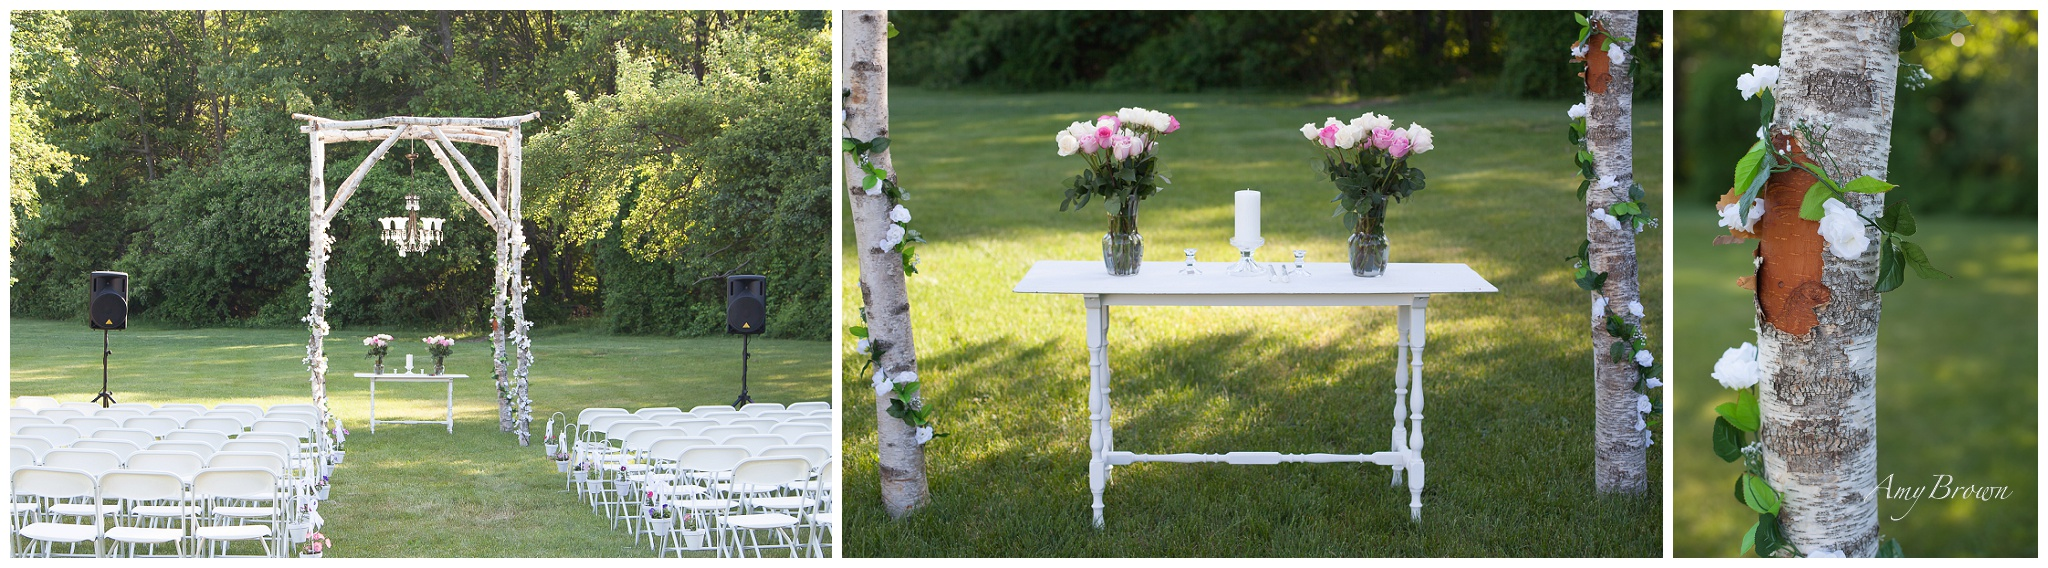 NH Wedding Photographer | DIY Birch tree decor | Amy Brown Photography